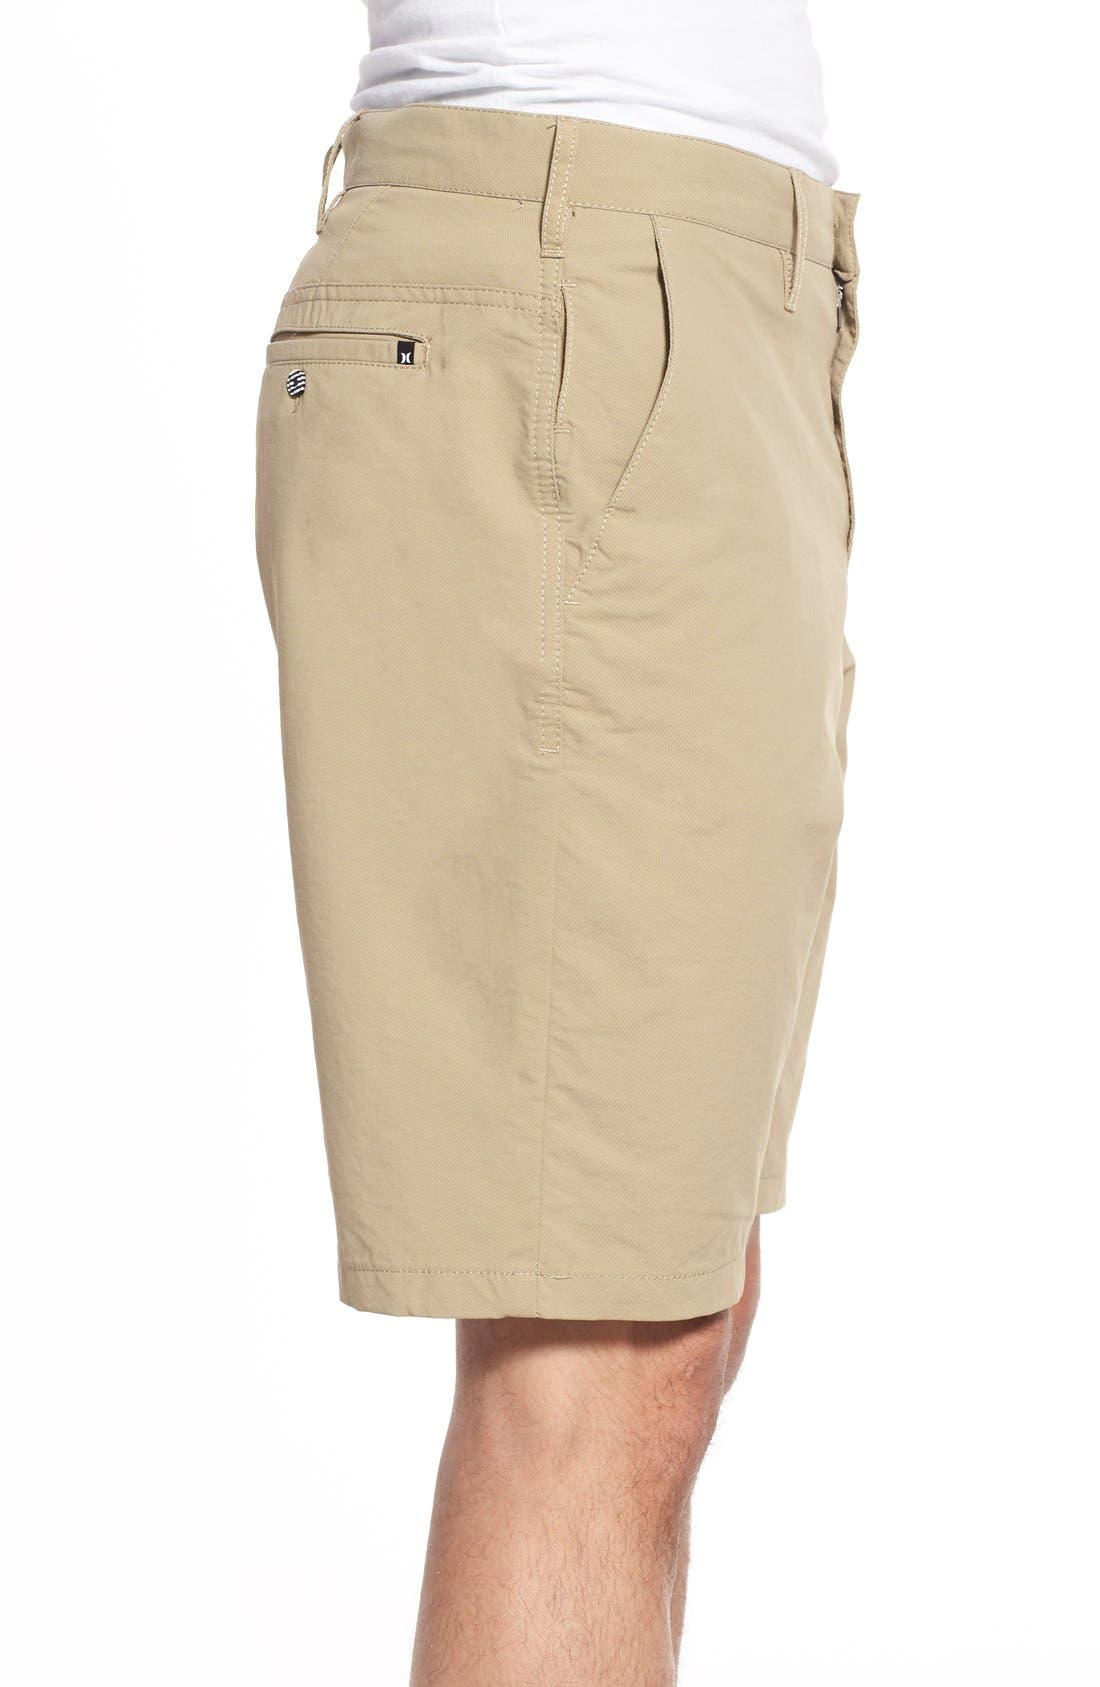 'Dry Out' Dri-FIT<sup>™</sup> Chino Shorts,                             Alternate thumbnail 200, color,